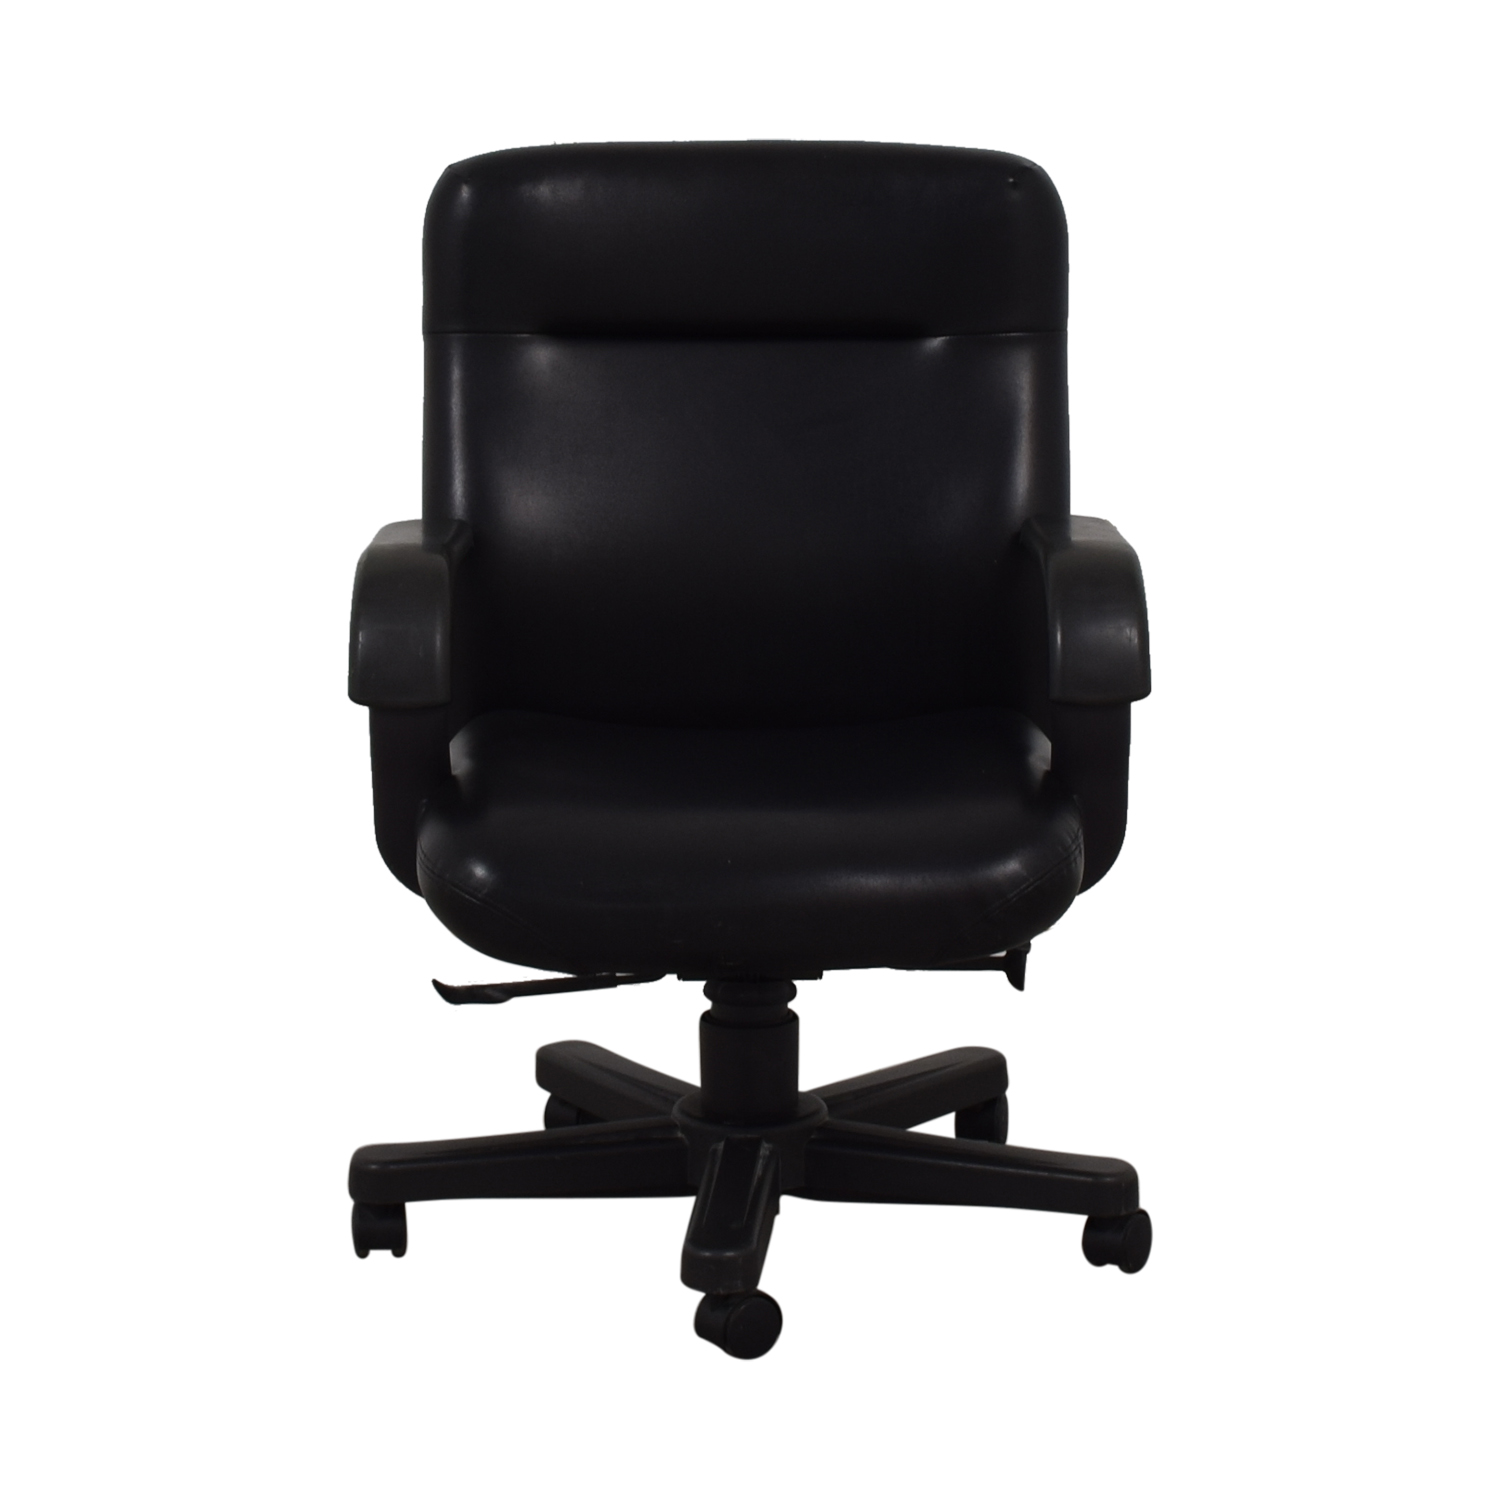 Knoll Knoll Office Chair dimensions